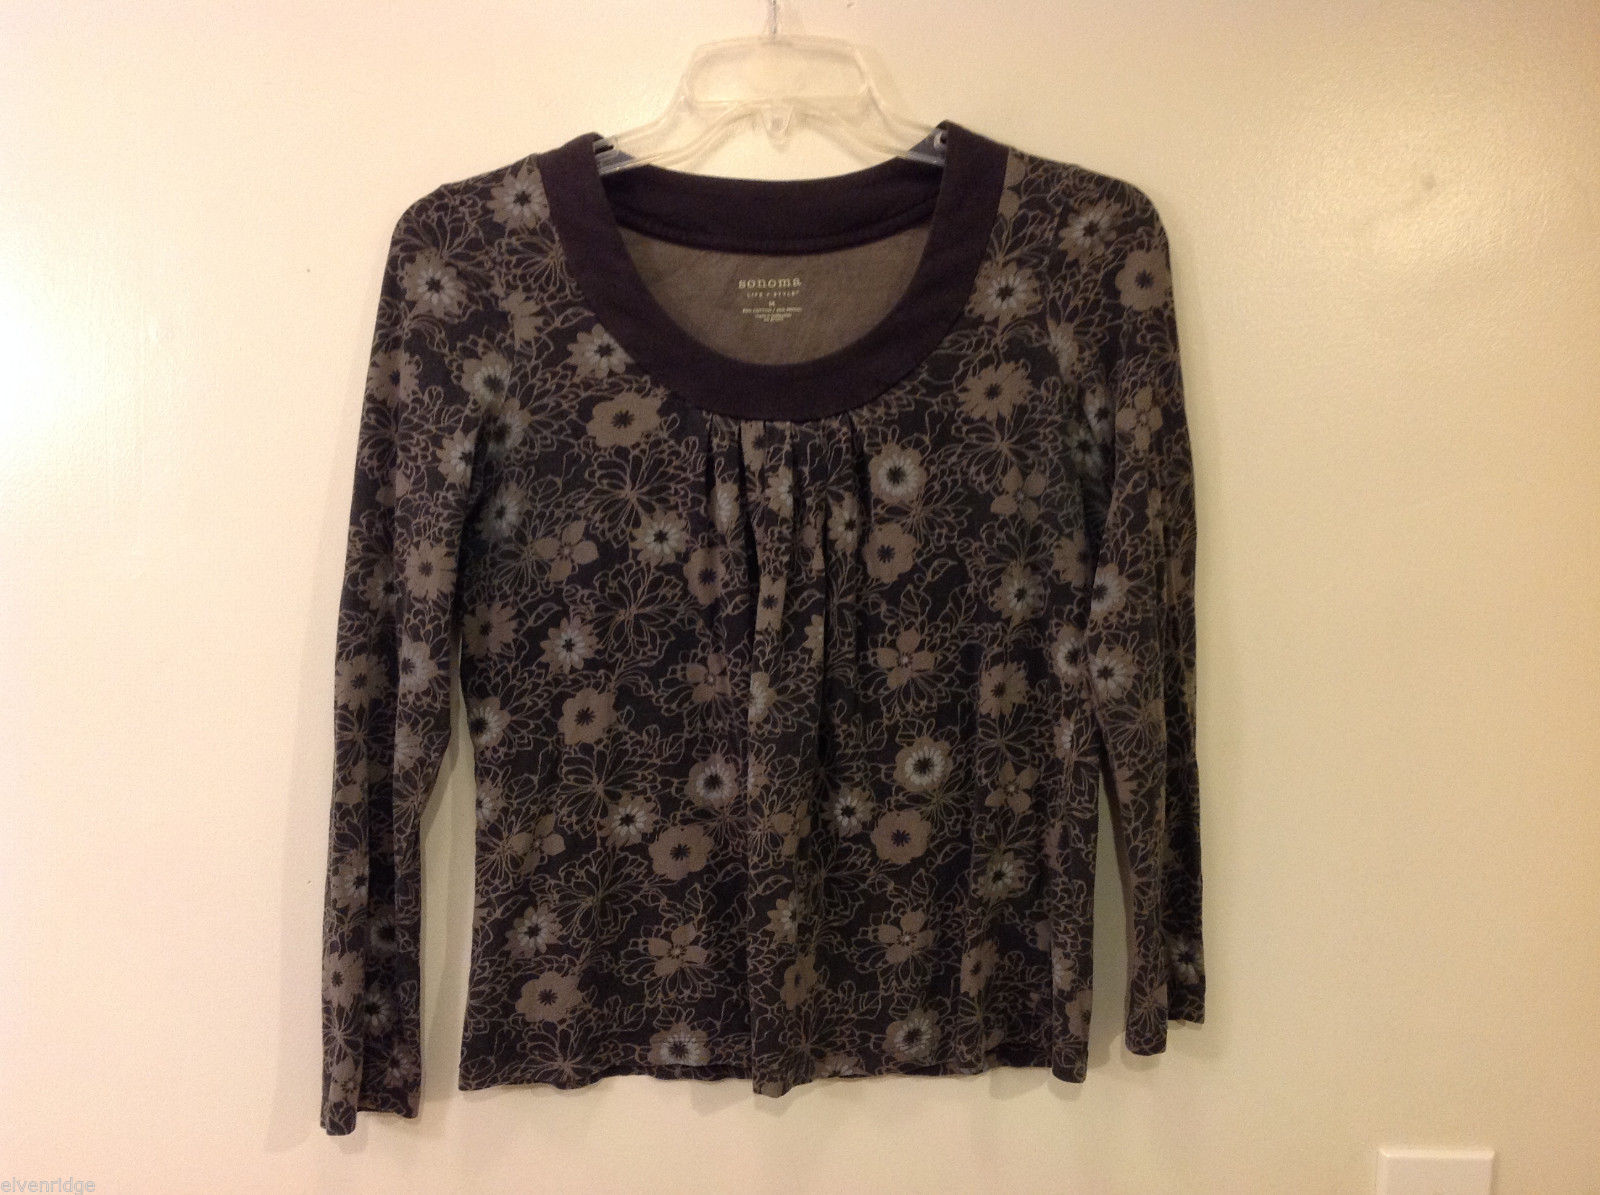 Sonoma Women's Size M Top Pleated Trapeze Long-Sleeve Floral Print Gray & Brown